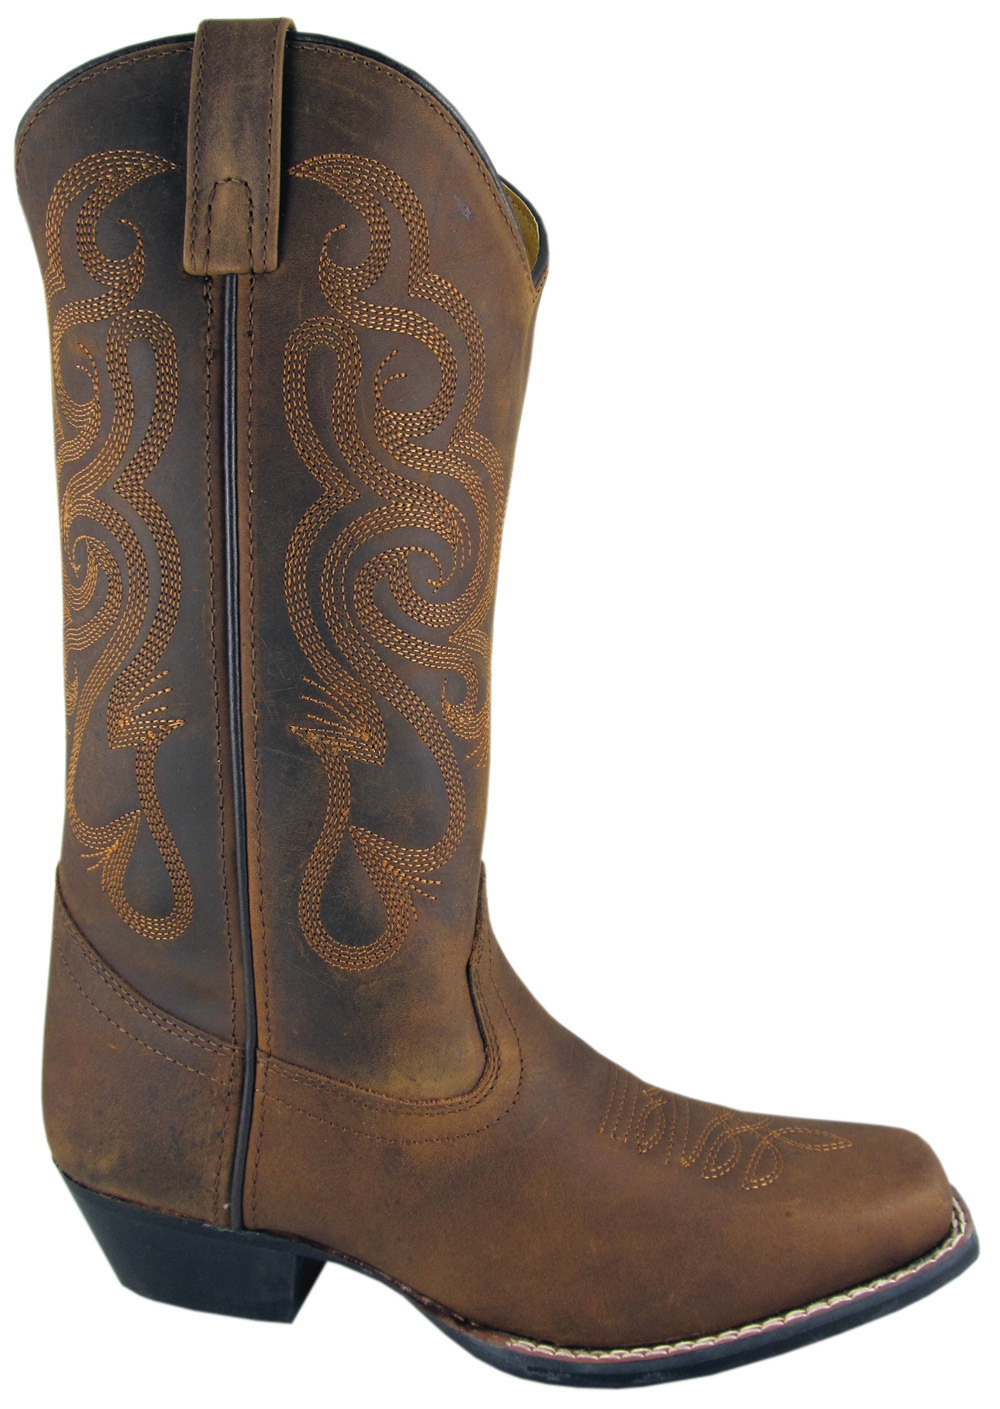 Ladies Brown Cowboy Boots - Boot Hto